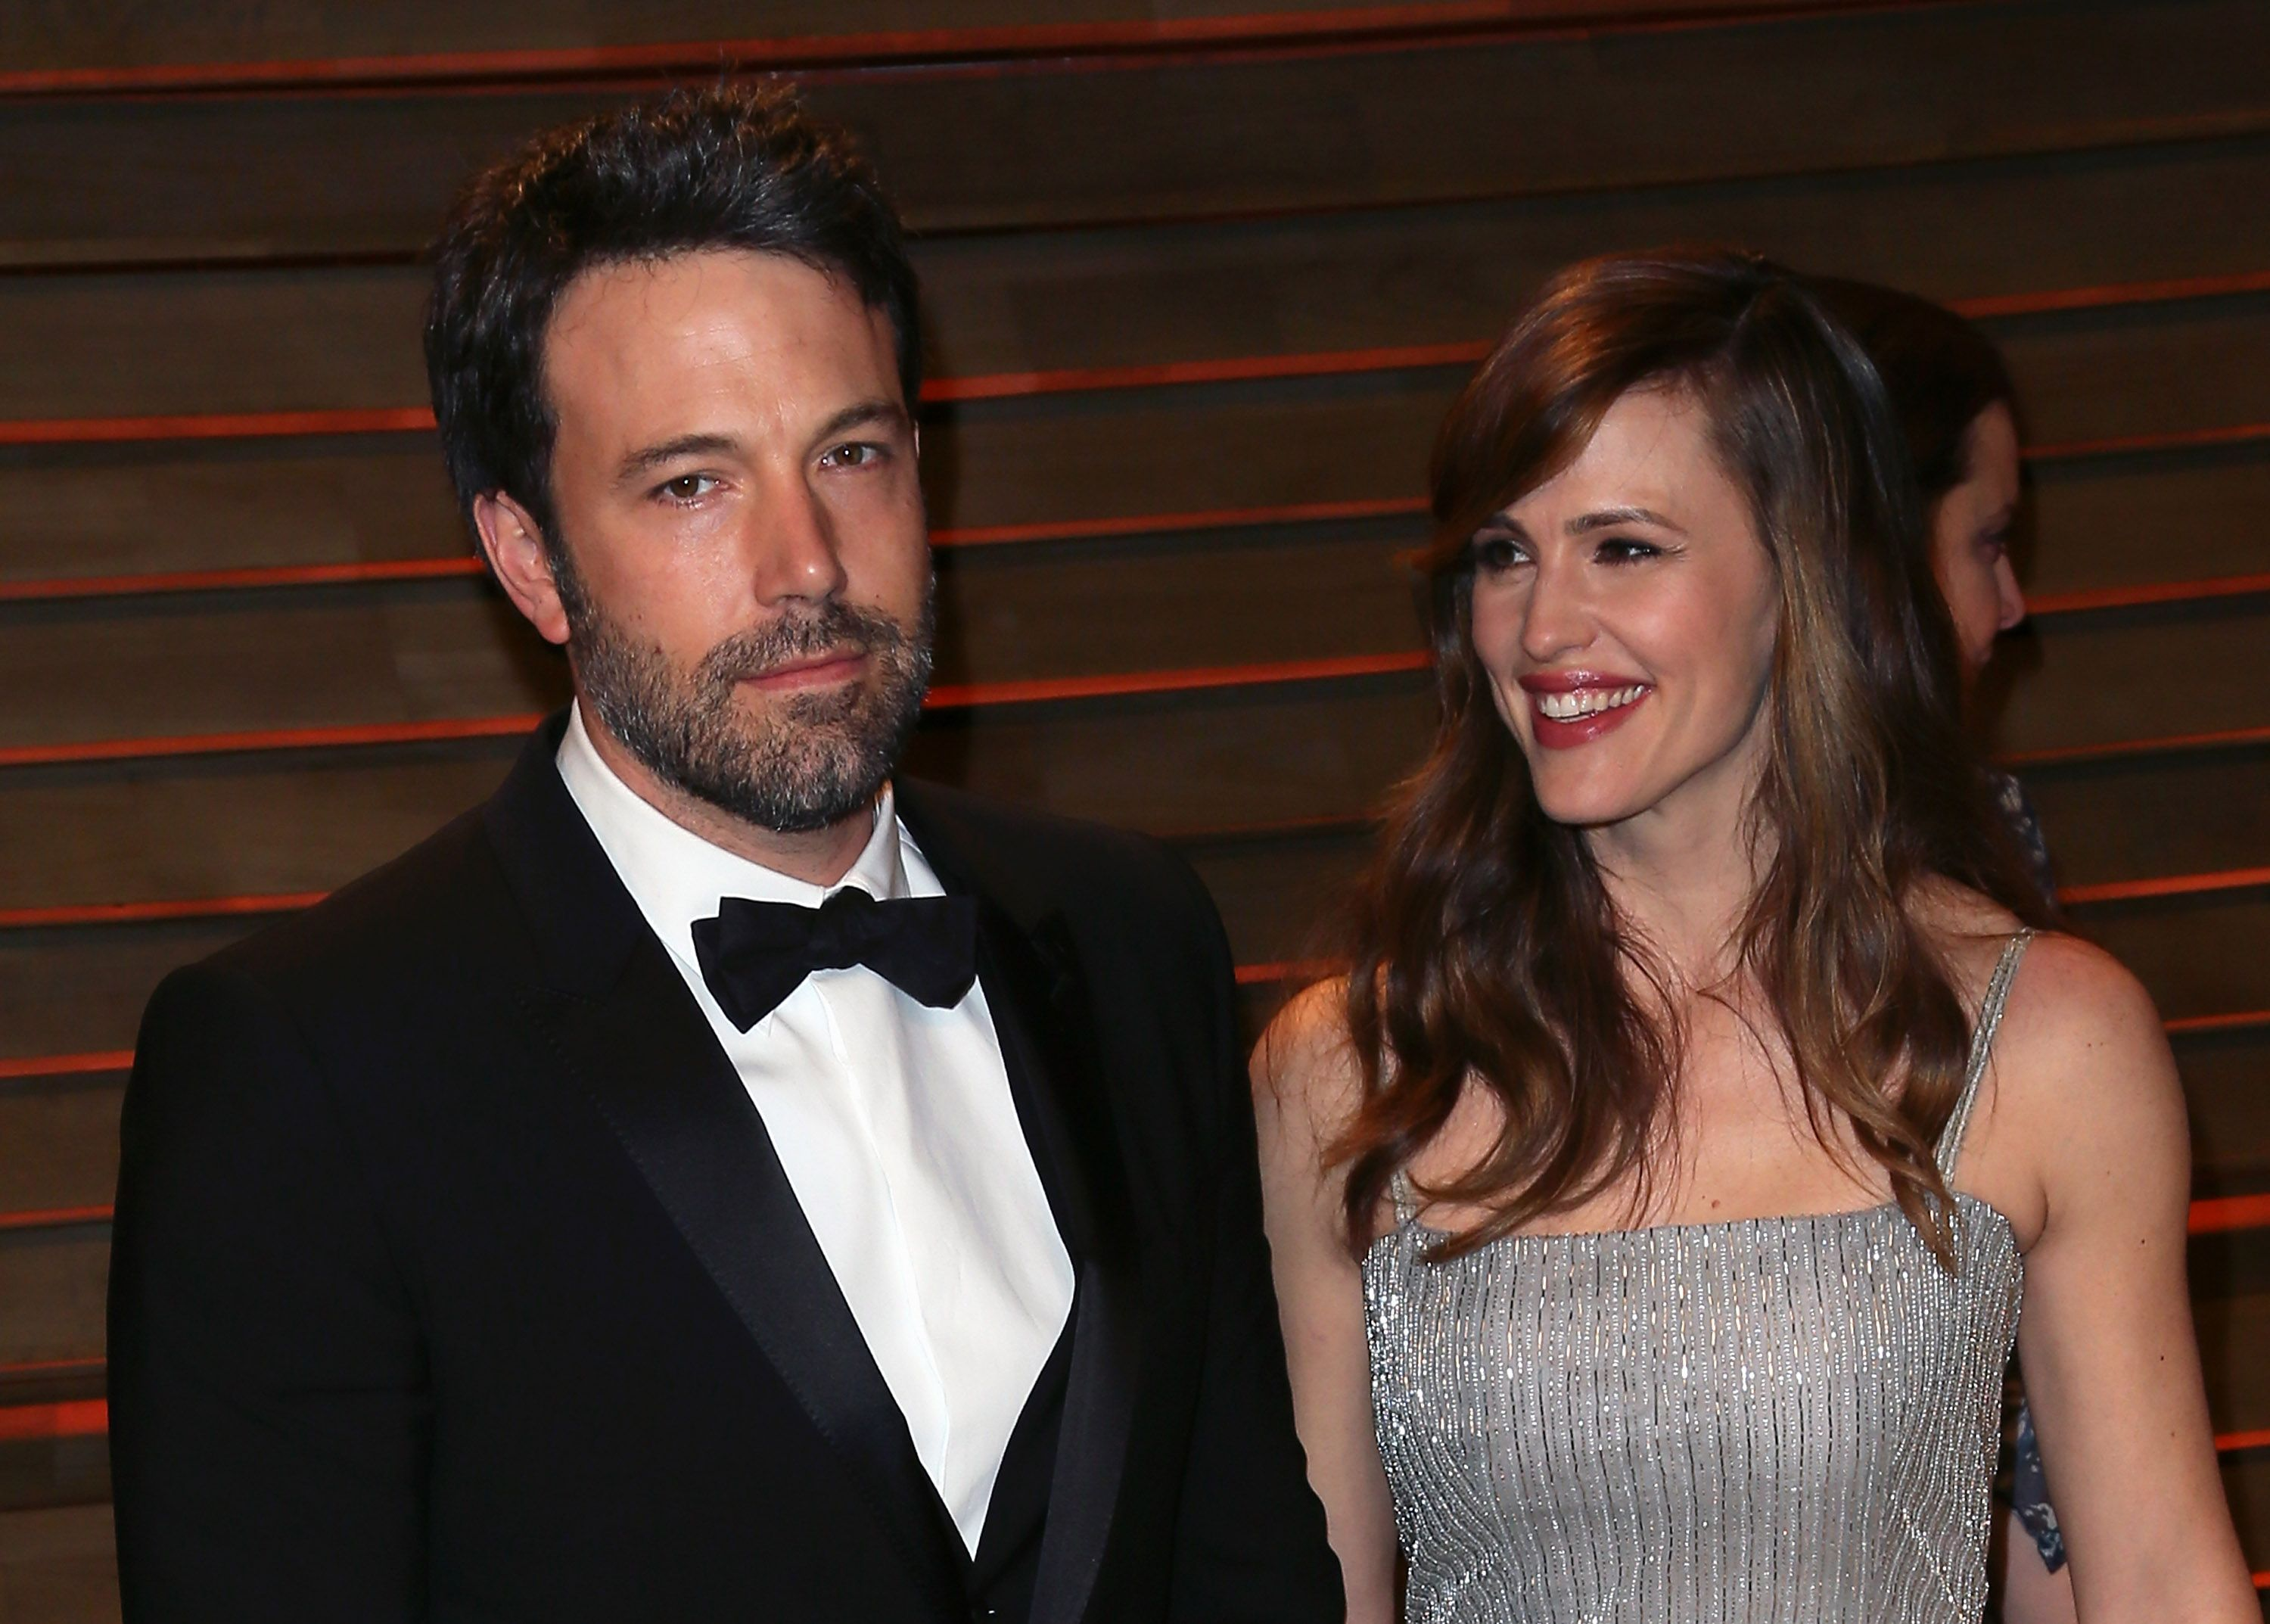 Ben Affleck and Jennifer Garner attend the 2014 Vanity Fair Oscar Party hosted by Graydon Carter on March 2, 2014 in West Hollywood, California. | Source: Getty Images